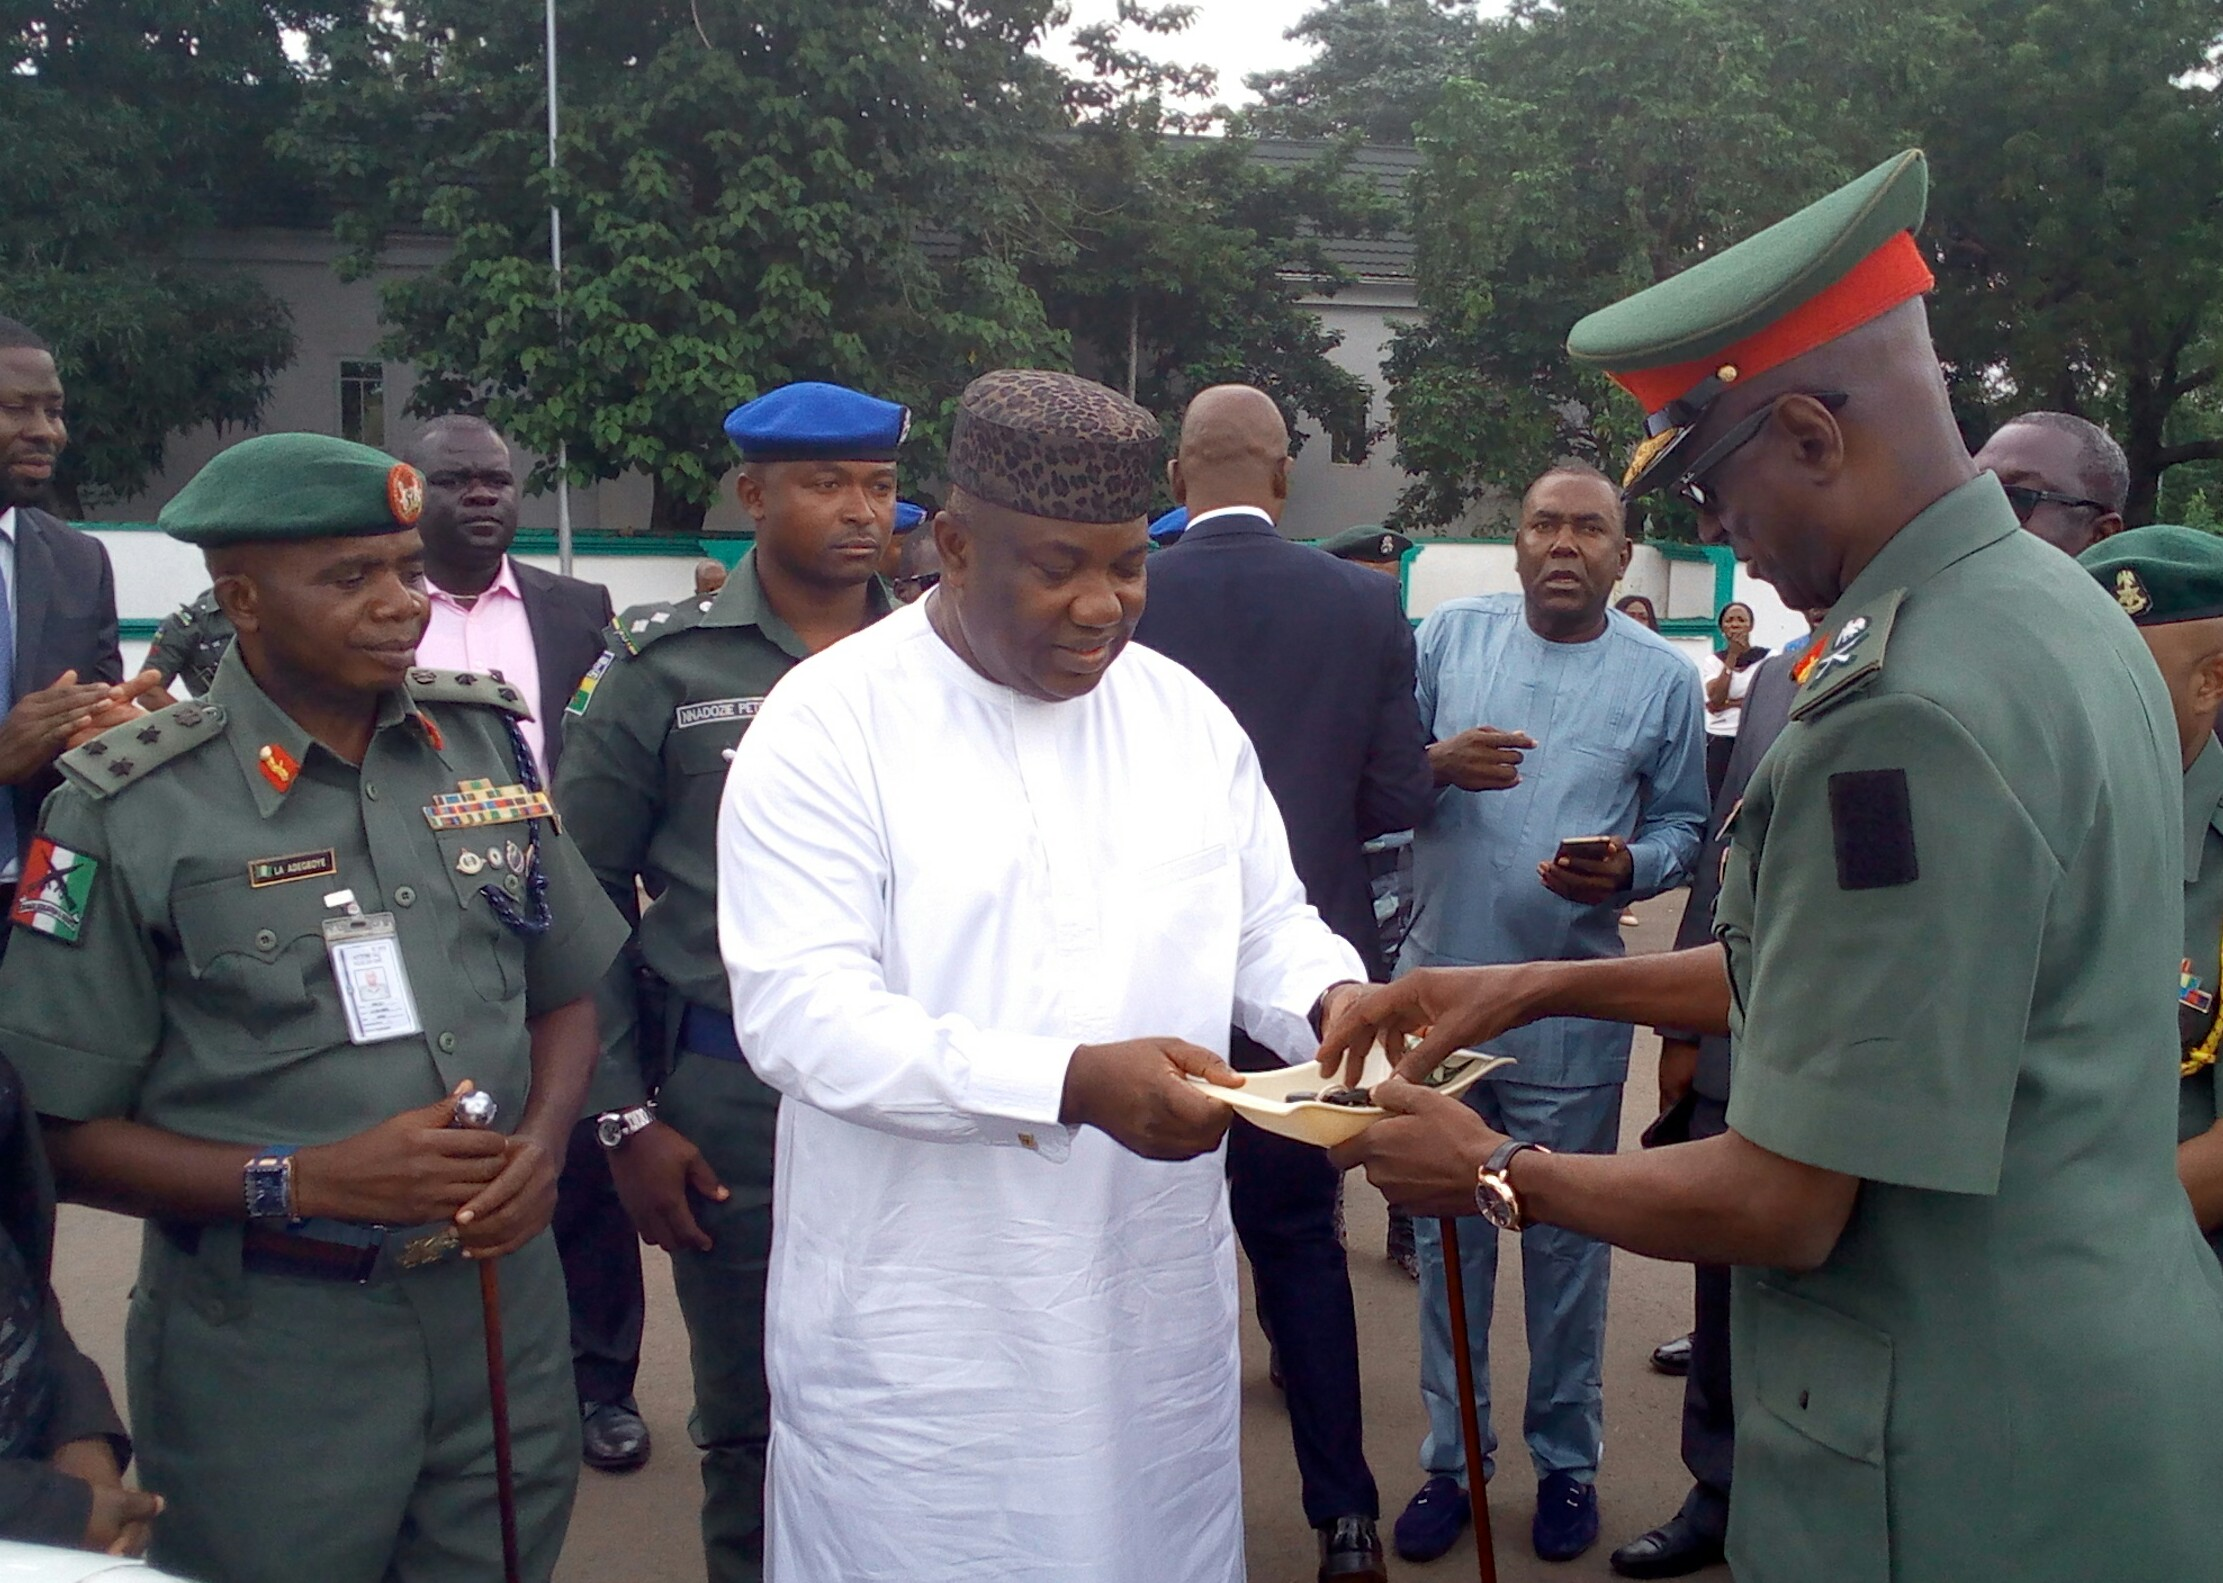 Gov. Ugwuanyi presenting the vehicles to Major Gen. Adamu Abubakar